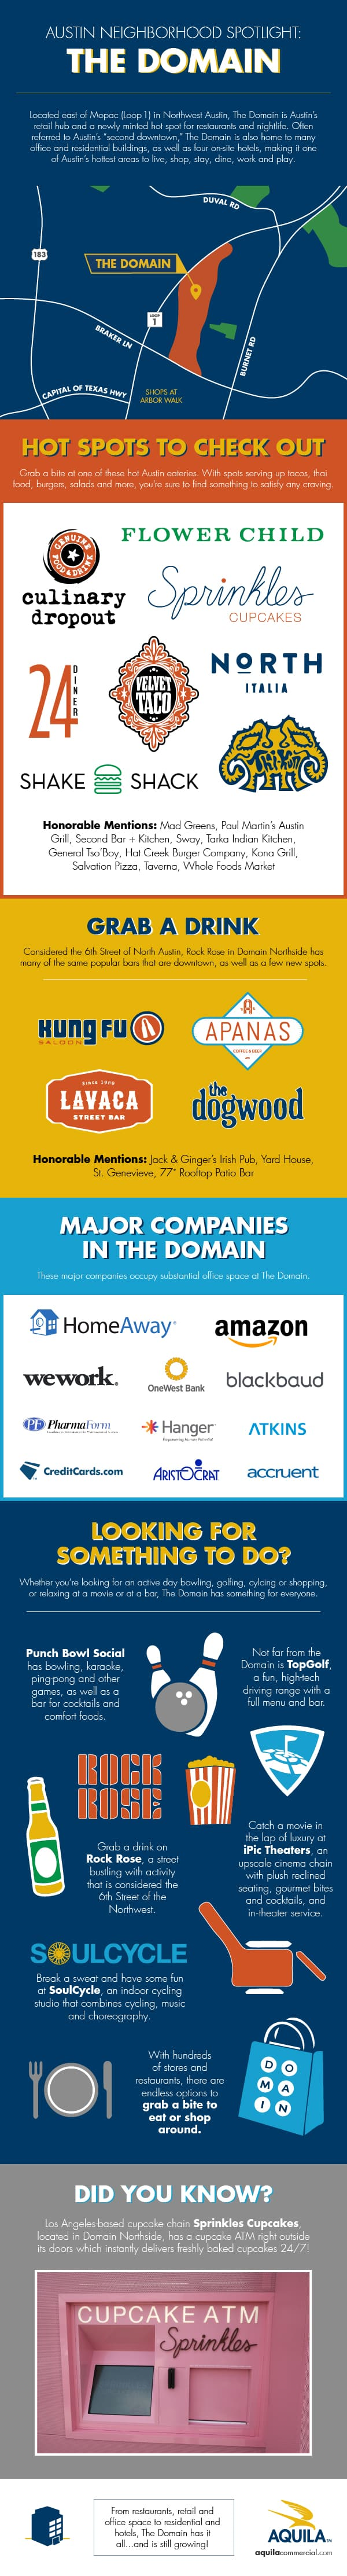 Domain Infographic - What to do, where to eat, which companies work in The Domain - Austin, Texas